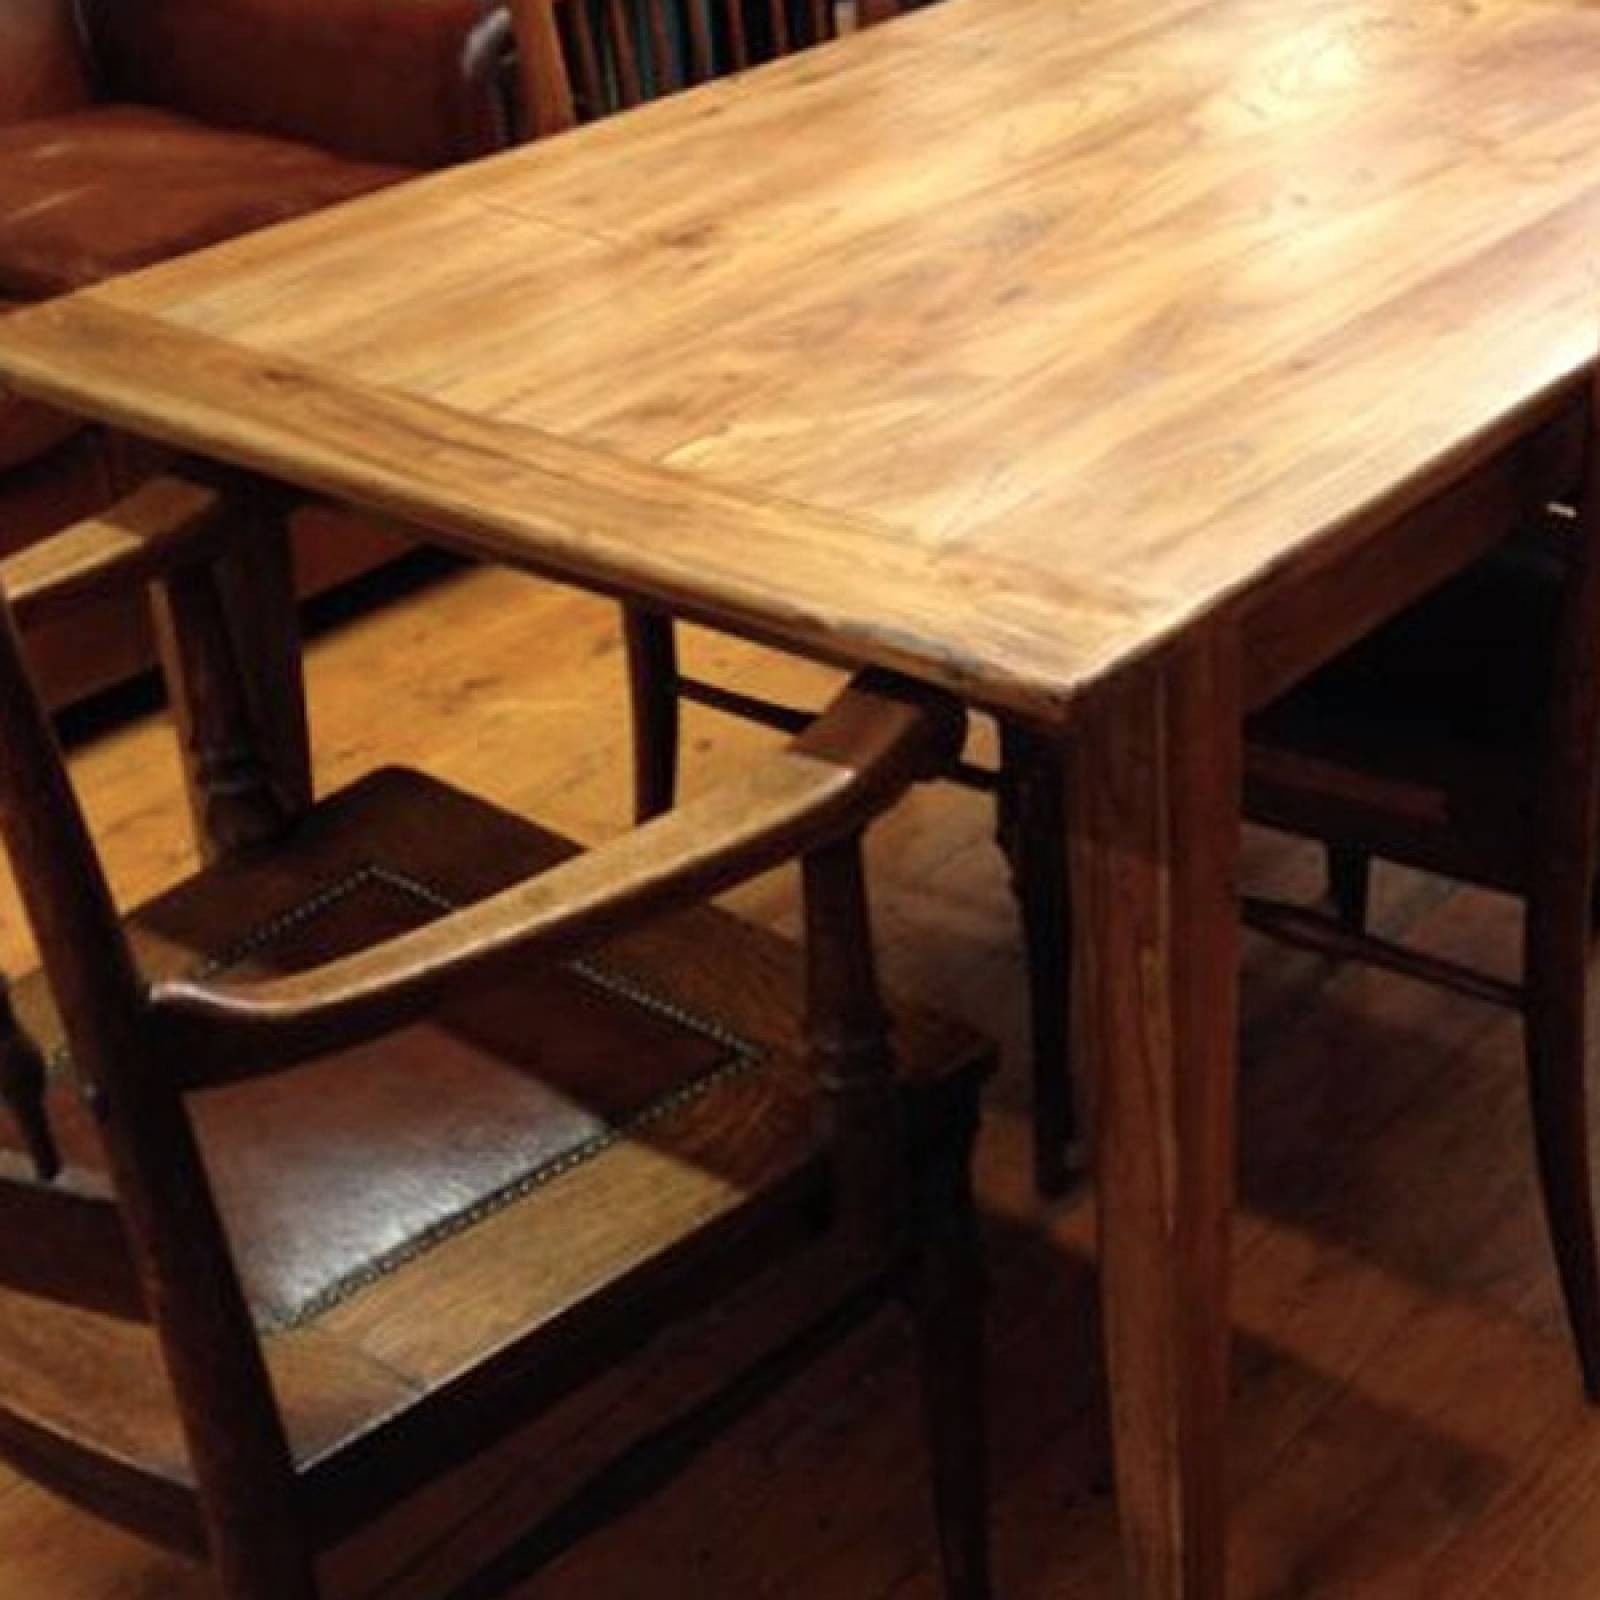 1.8 metre Reclaimed Elm Dining Table - W:181cm D:85cm H:76cm thumbnails